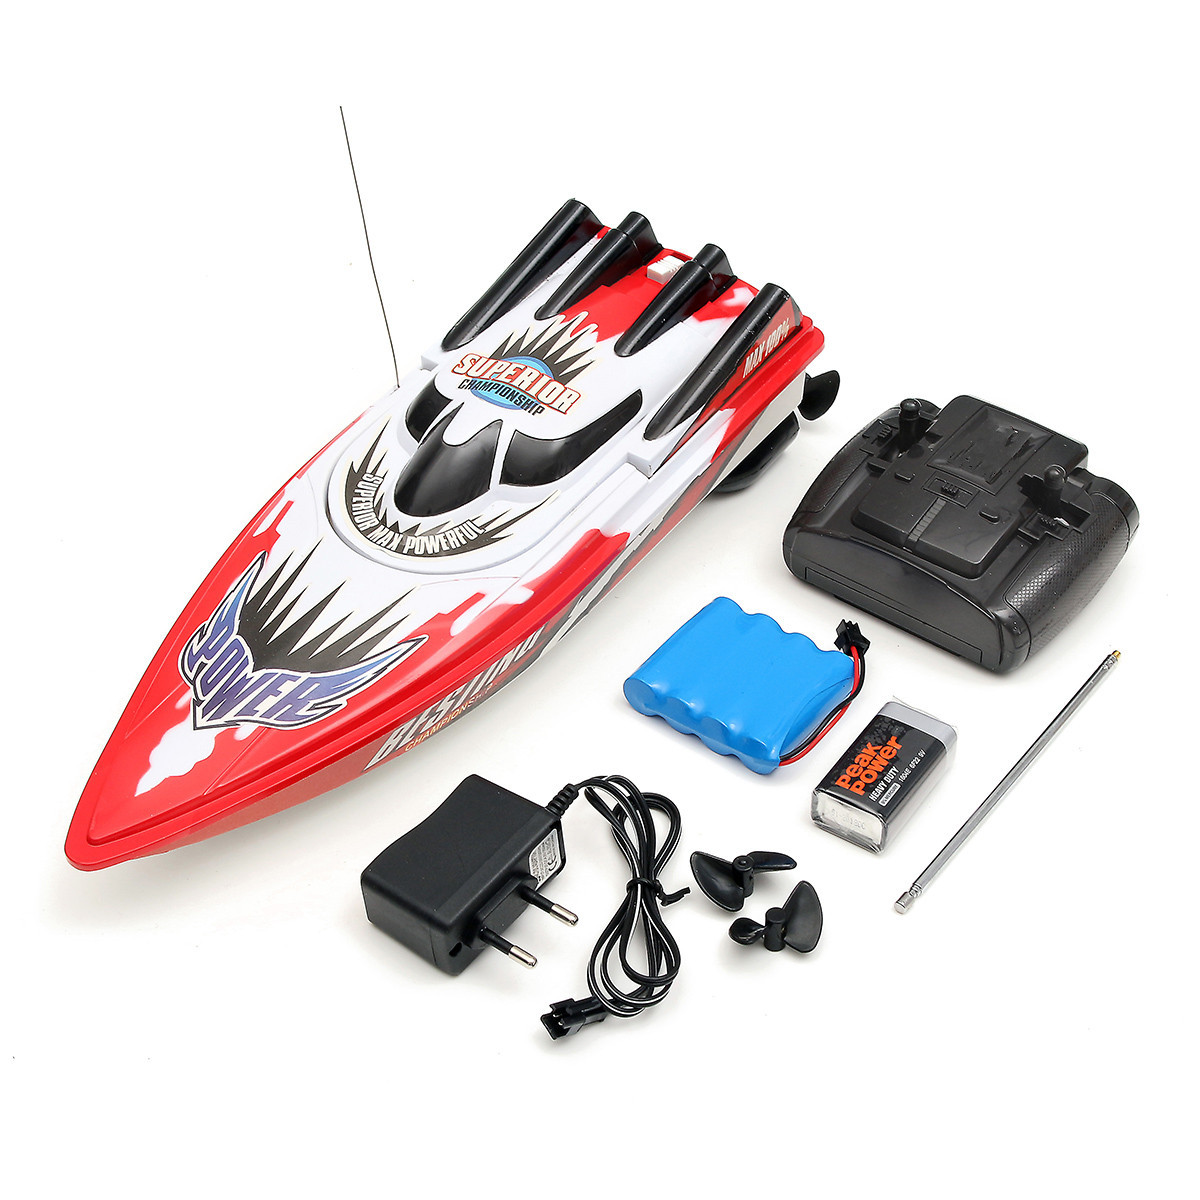 Red Racing Boat Ship Radio Remote Control Twin Motor High Speed RC Boat Toy Christmas Kids Children Birthday Gift